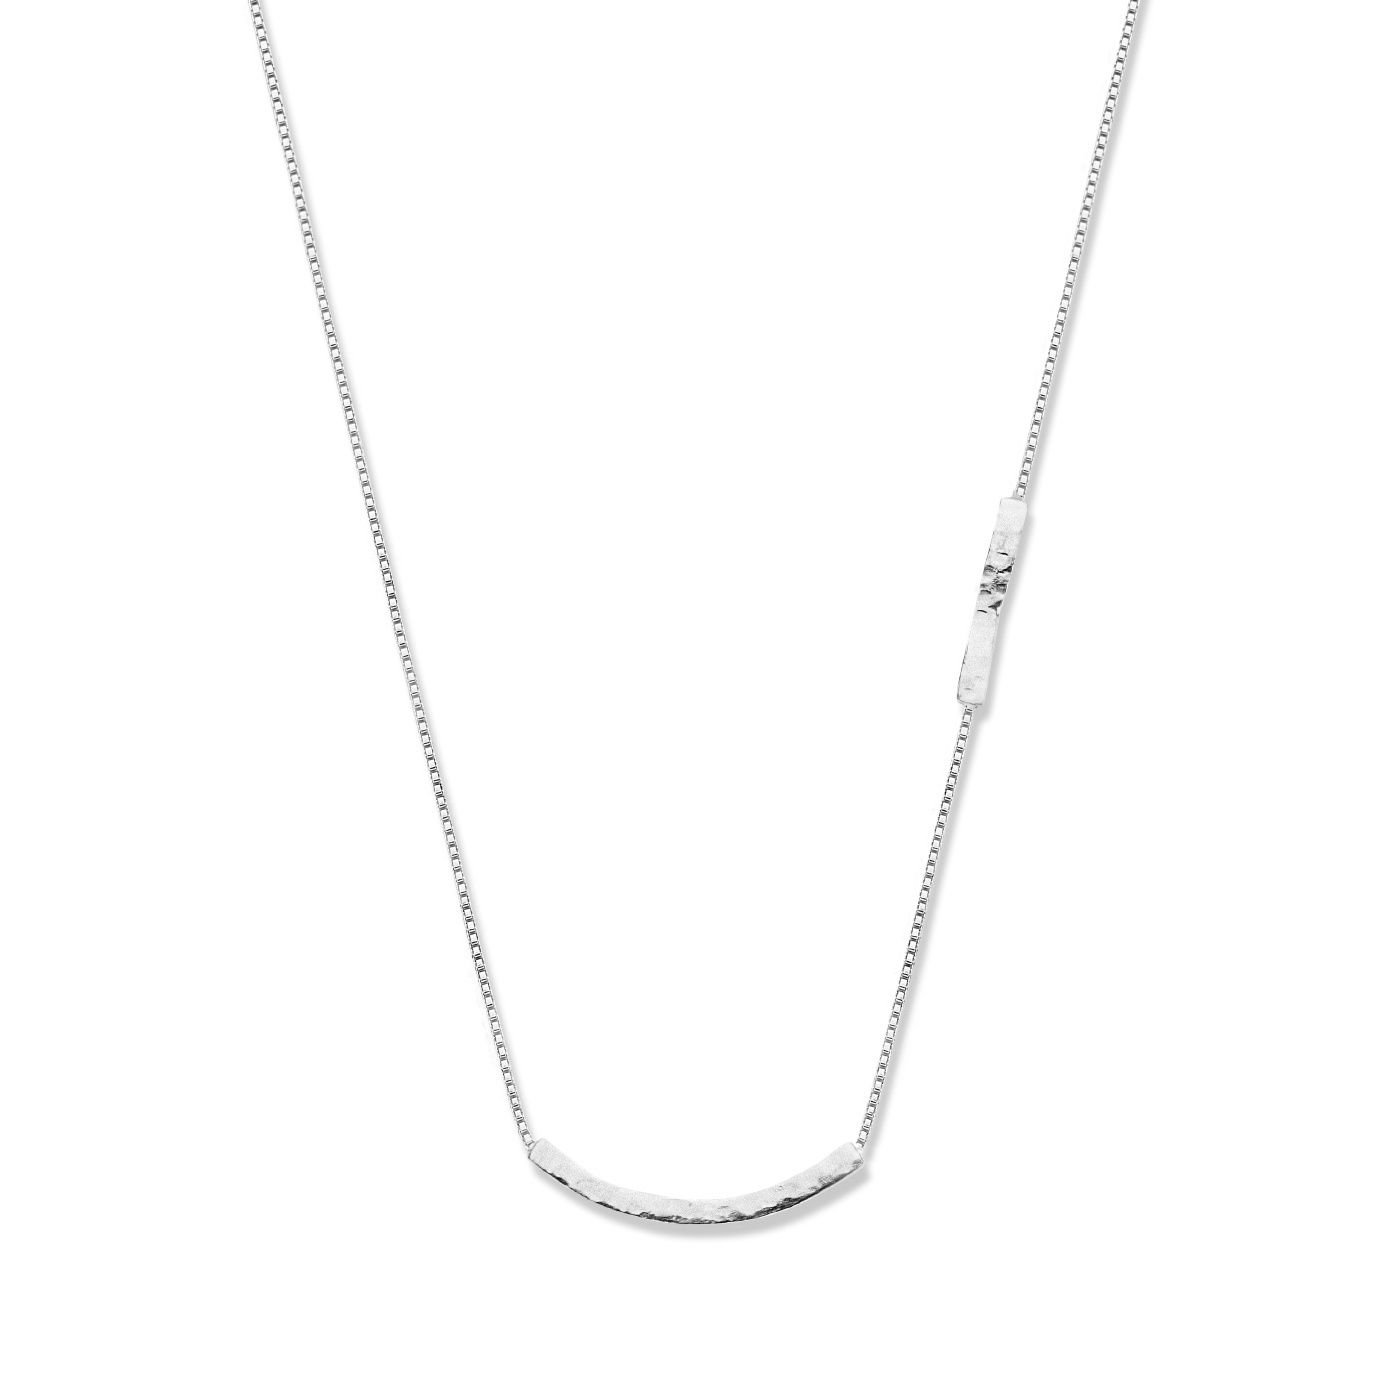 Violet Hamden Sisterhood Moonlit Collier en argent sterling 925